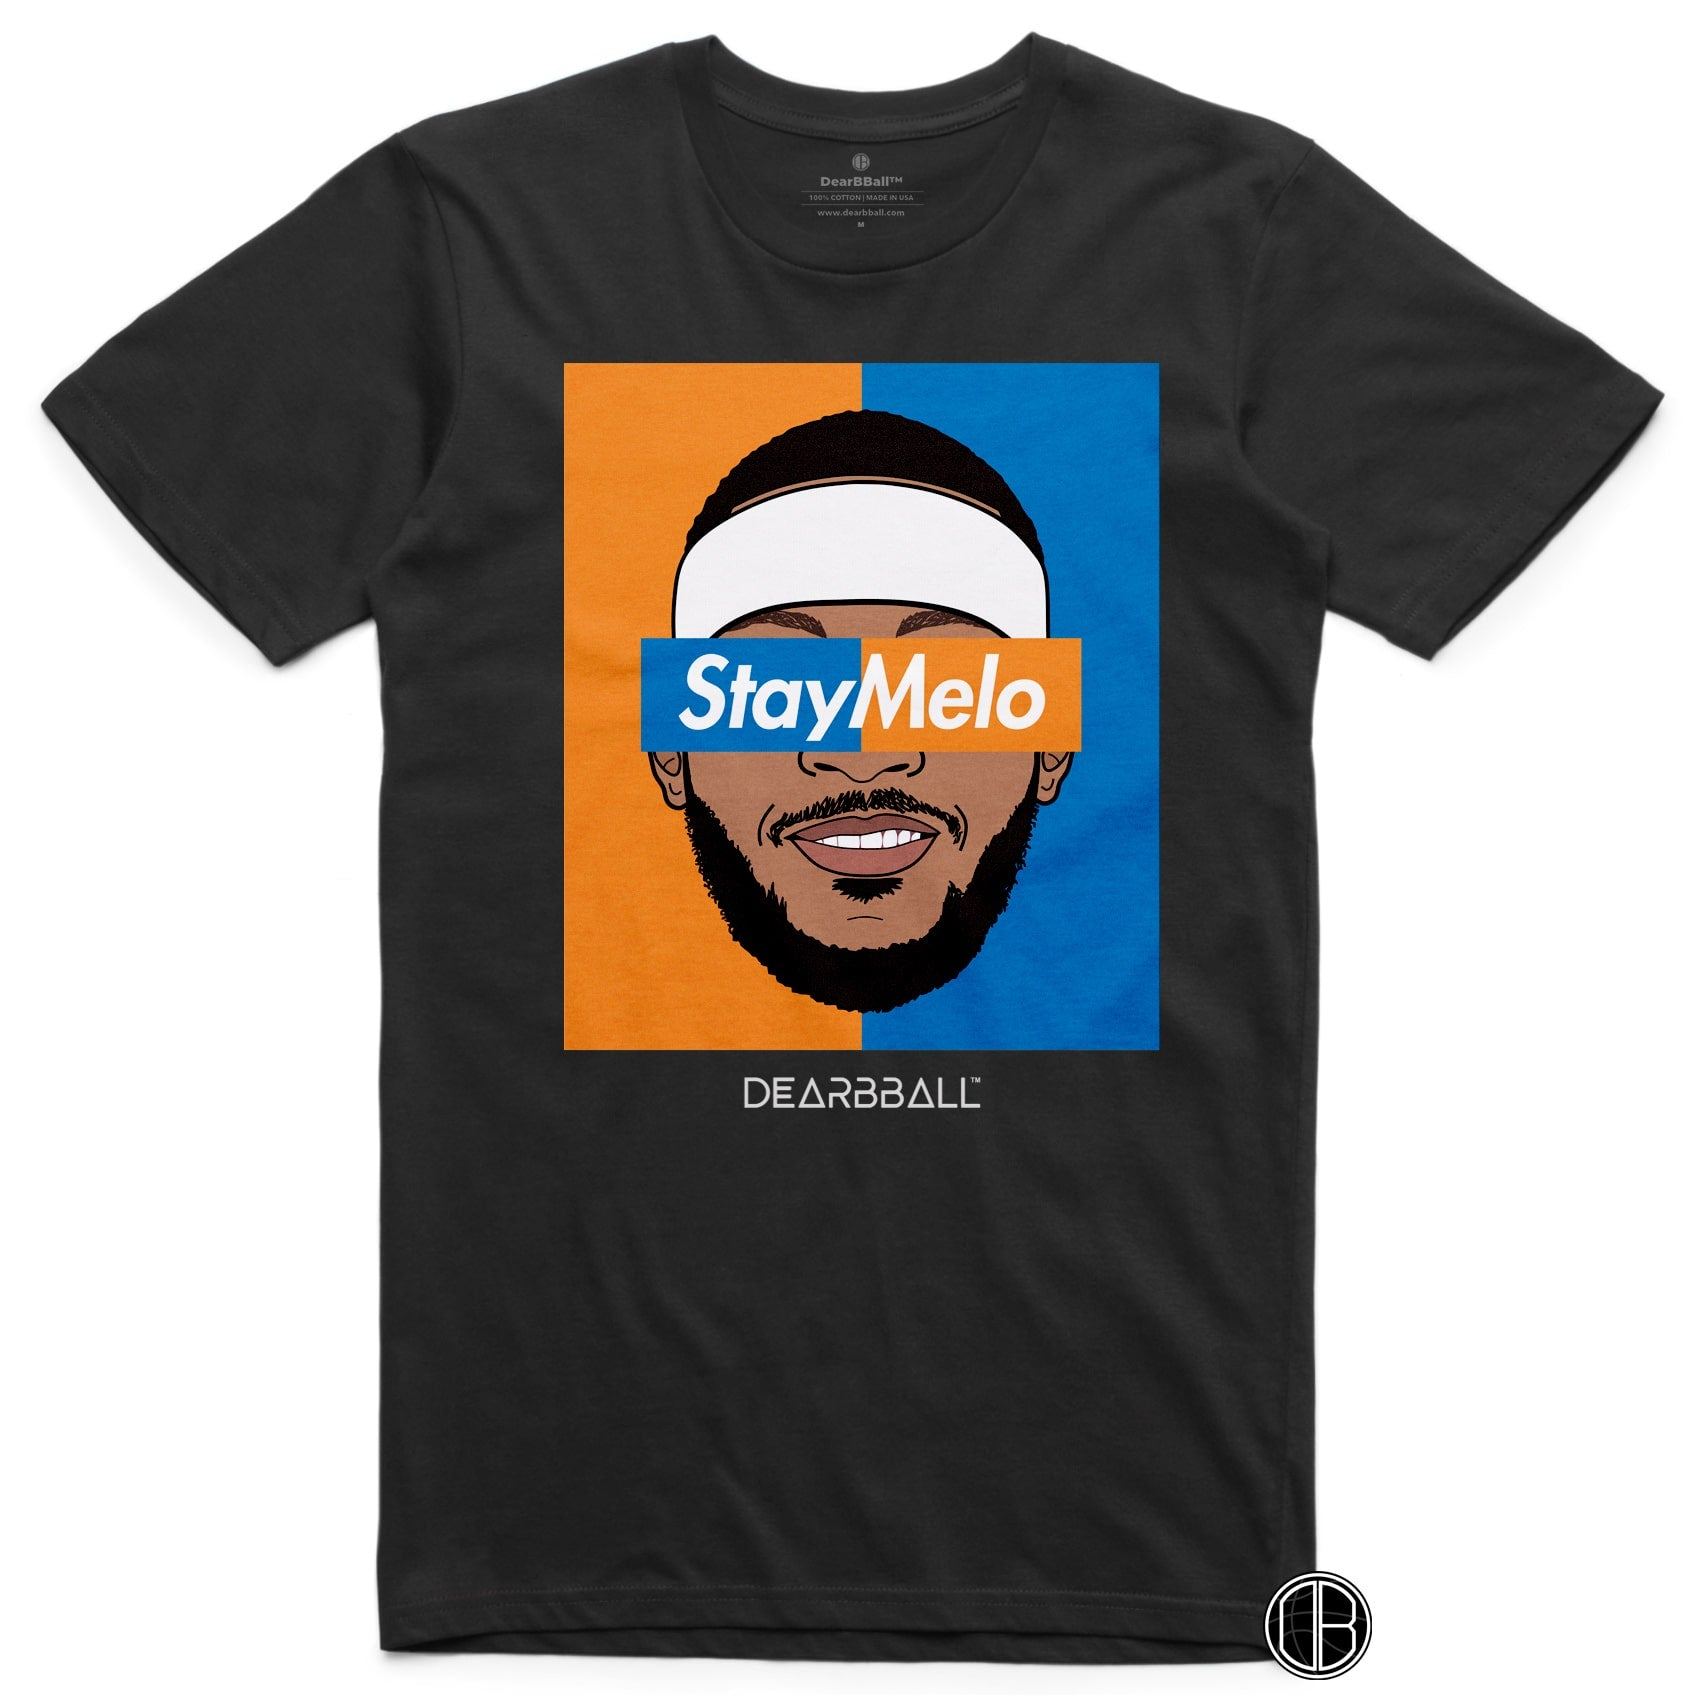 Carmelo_Anthony_Shirt_StayMelo_Dearbball_Black